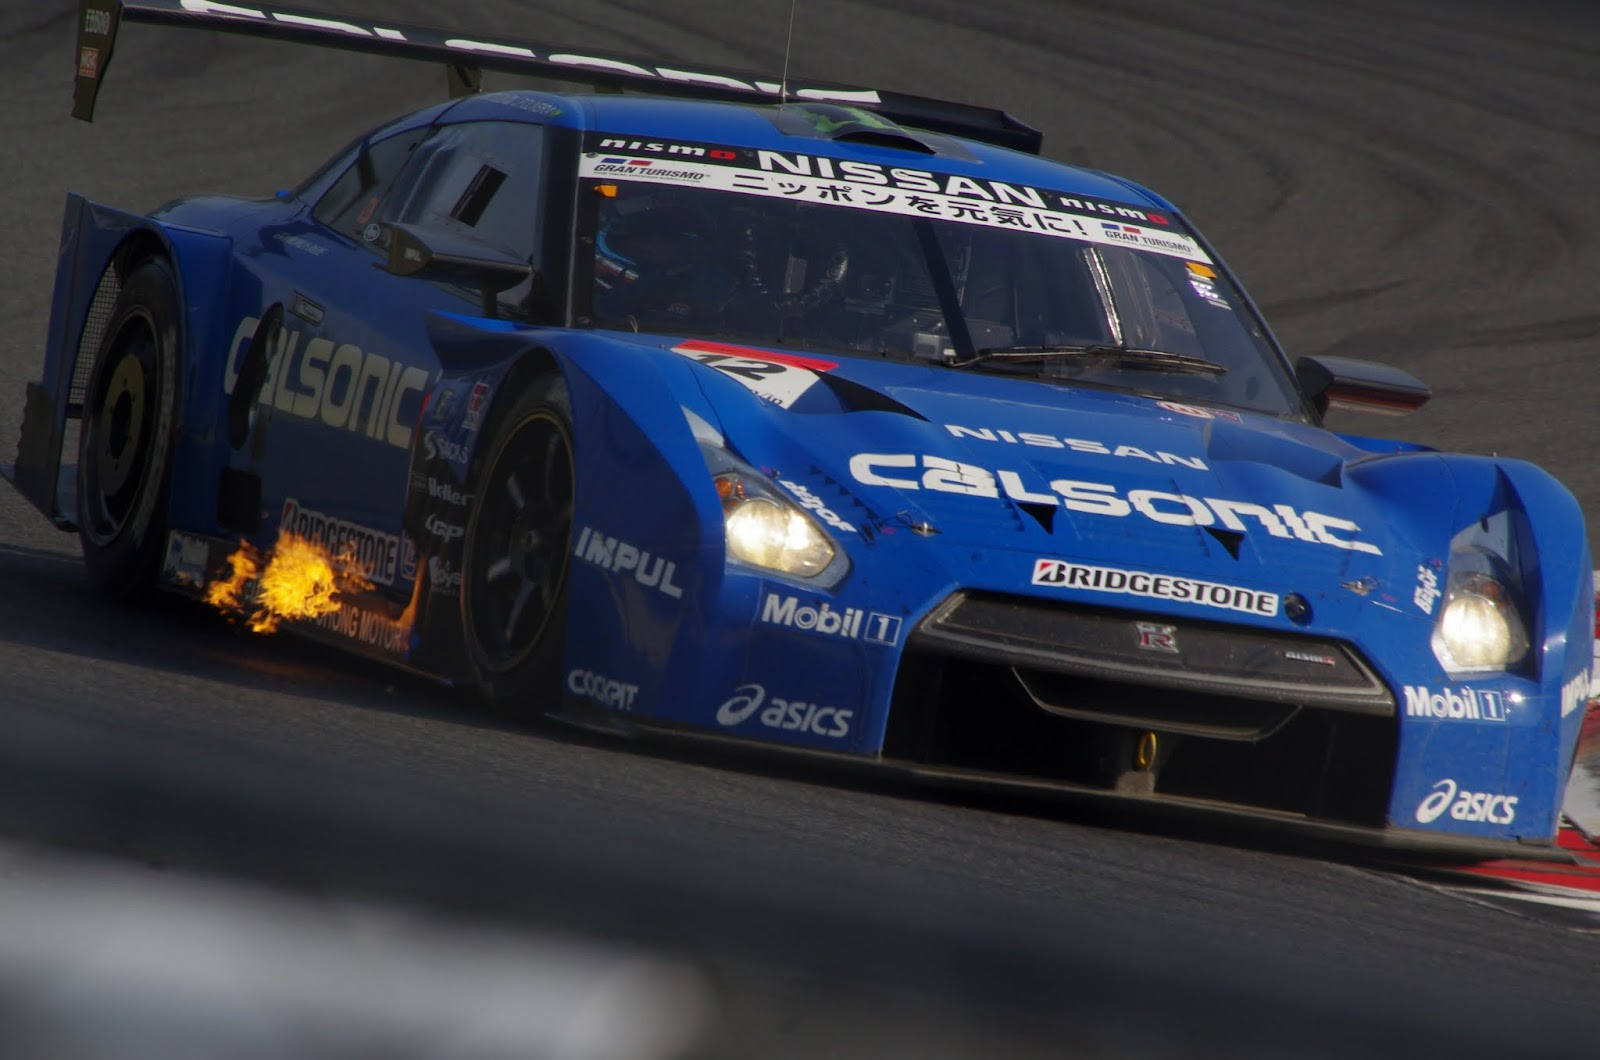 All Racing Cars Are Beautiful Calsonic Impul Gt R